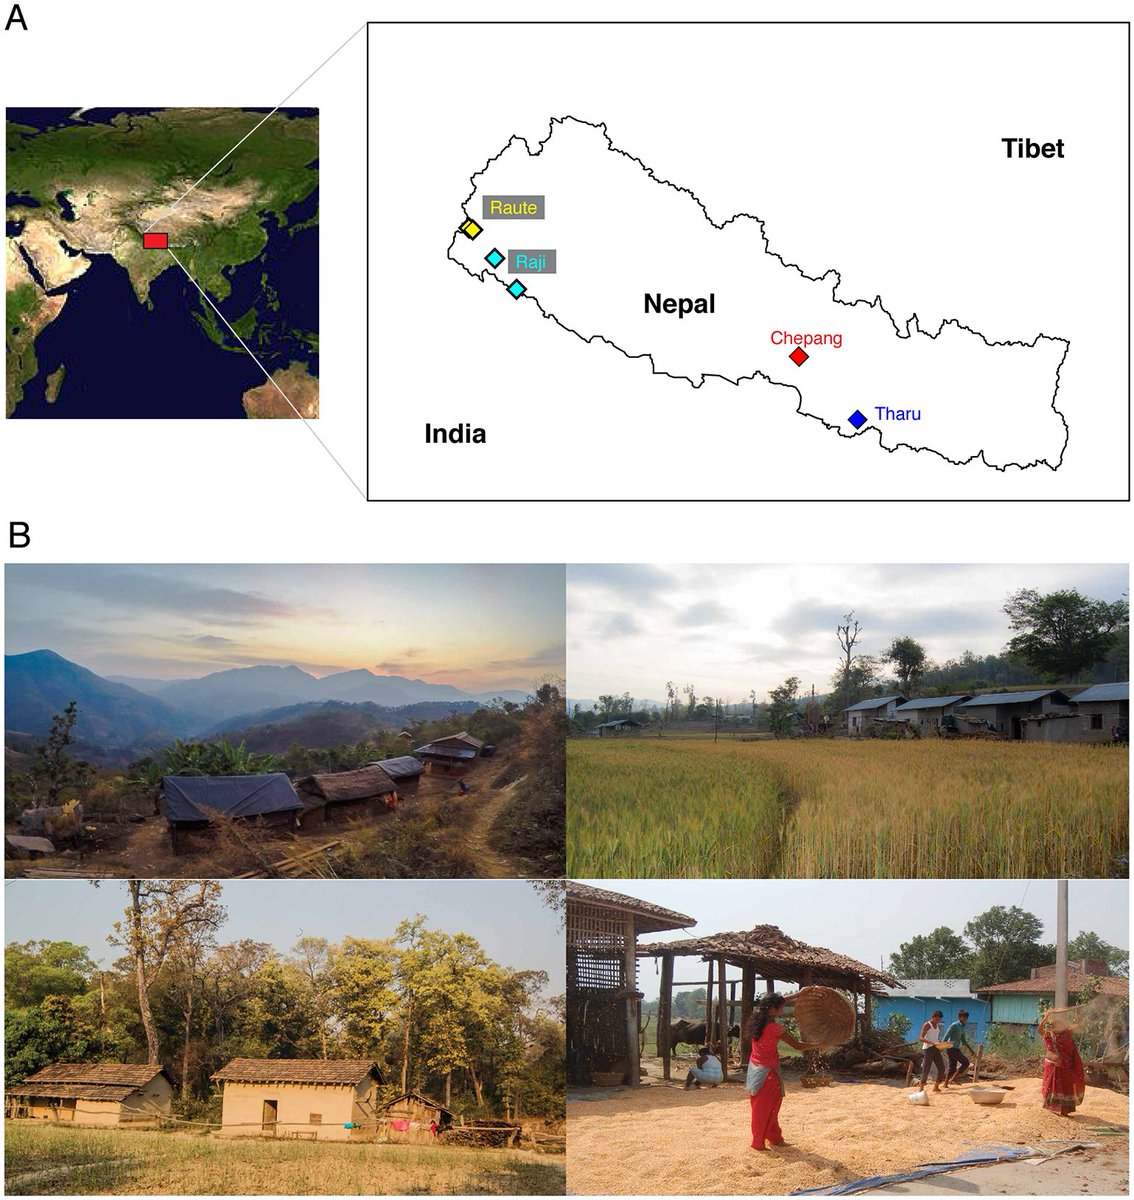 Our paper on gut microbiome transition across a lifestyle gradient in Himalaya is out today in @PLOSBiology. It was great working with @emo_davenport @yos_h @MeDinesh43 @sar1234tan @GabiFragiadakis @SherlockpHolmes @cdbustamante @GutBugs2. https://bit.ly/2zTh6Yo